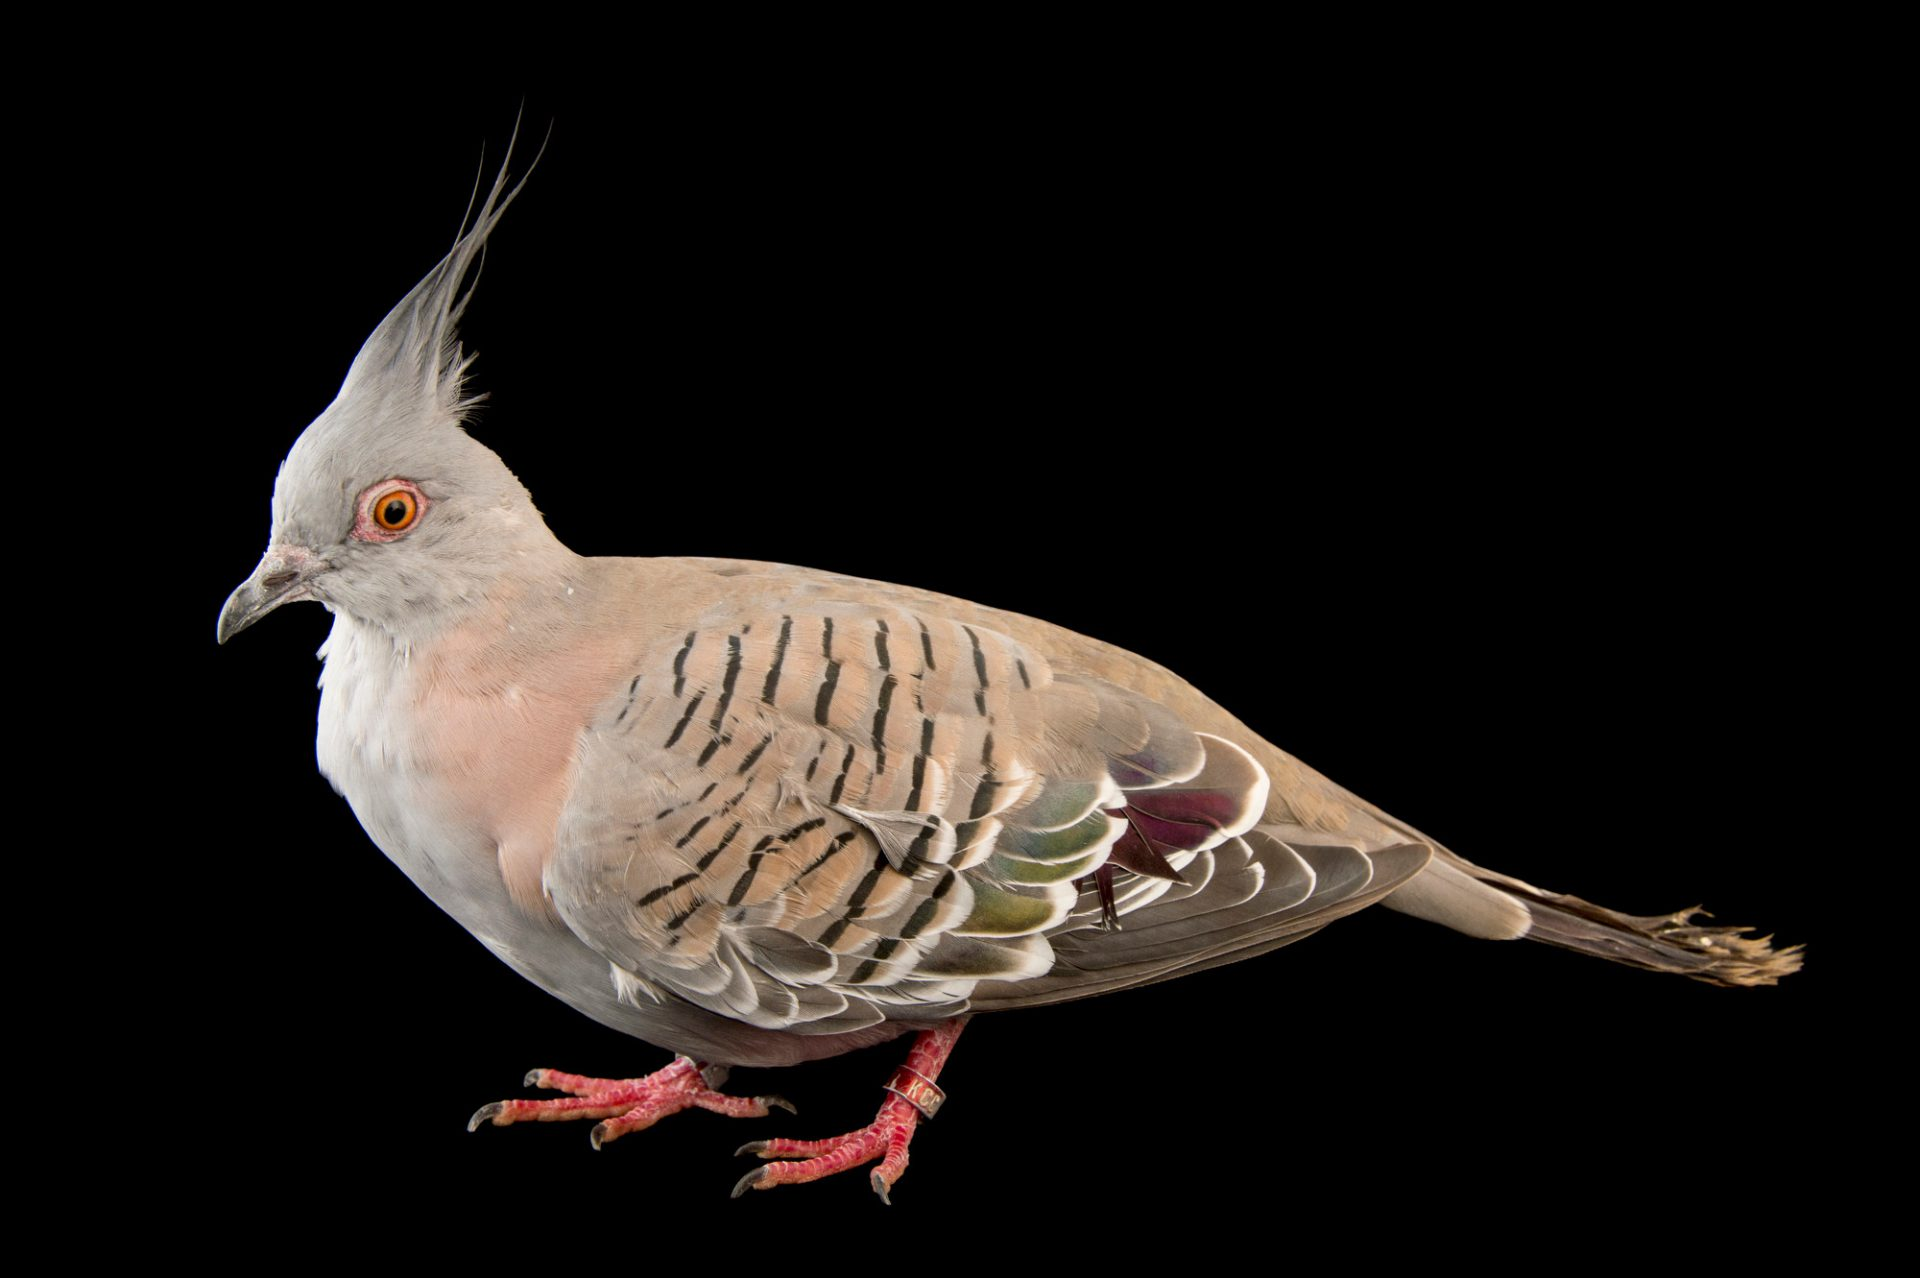 Photo: A crested pigeon (Ocyphaps lophotes) at the Blank Park Zoo in Des Moines, Iowa.